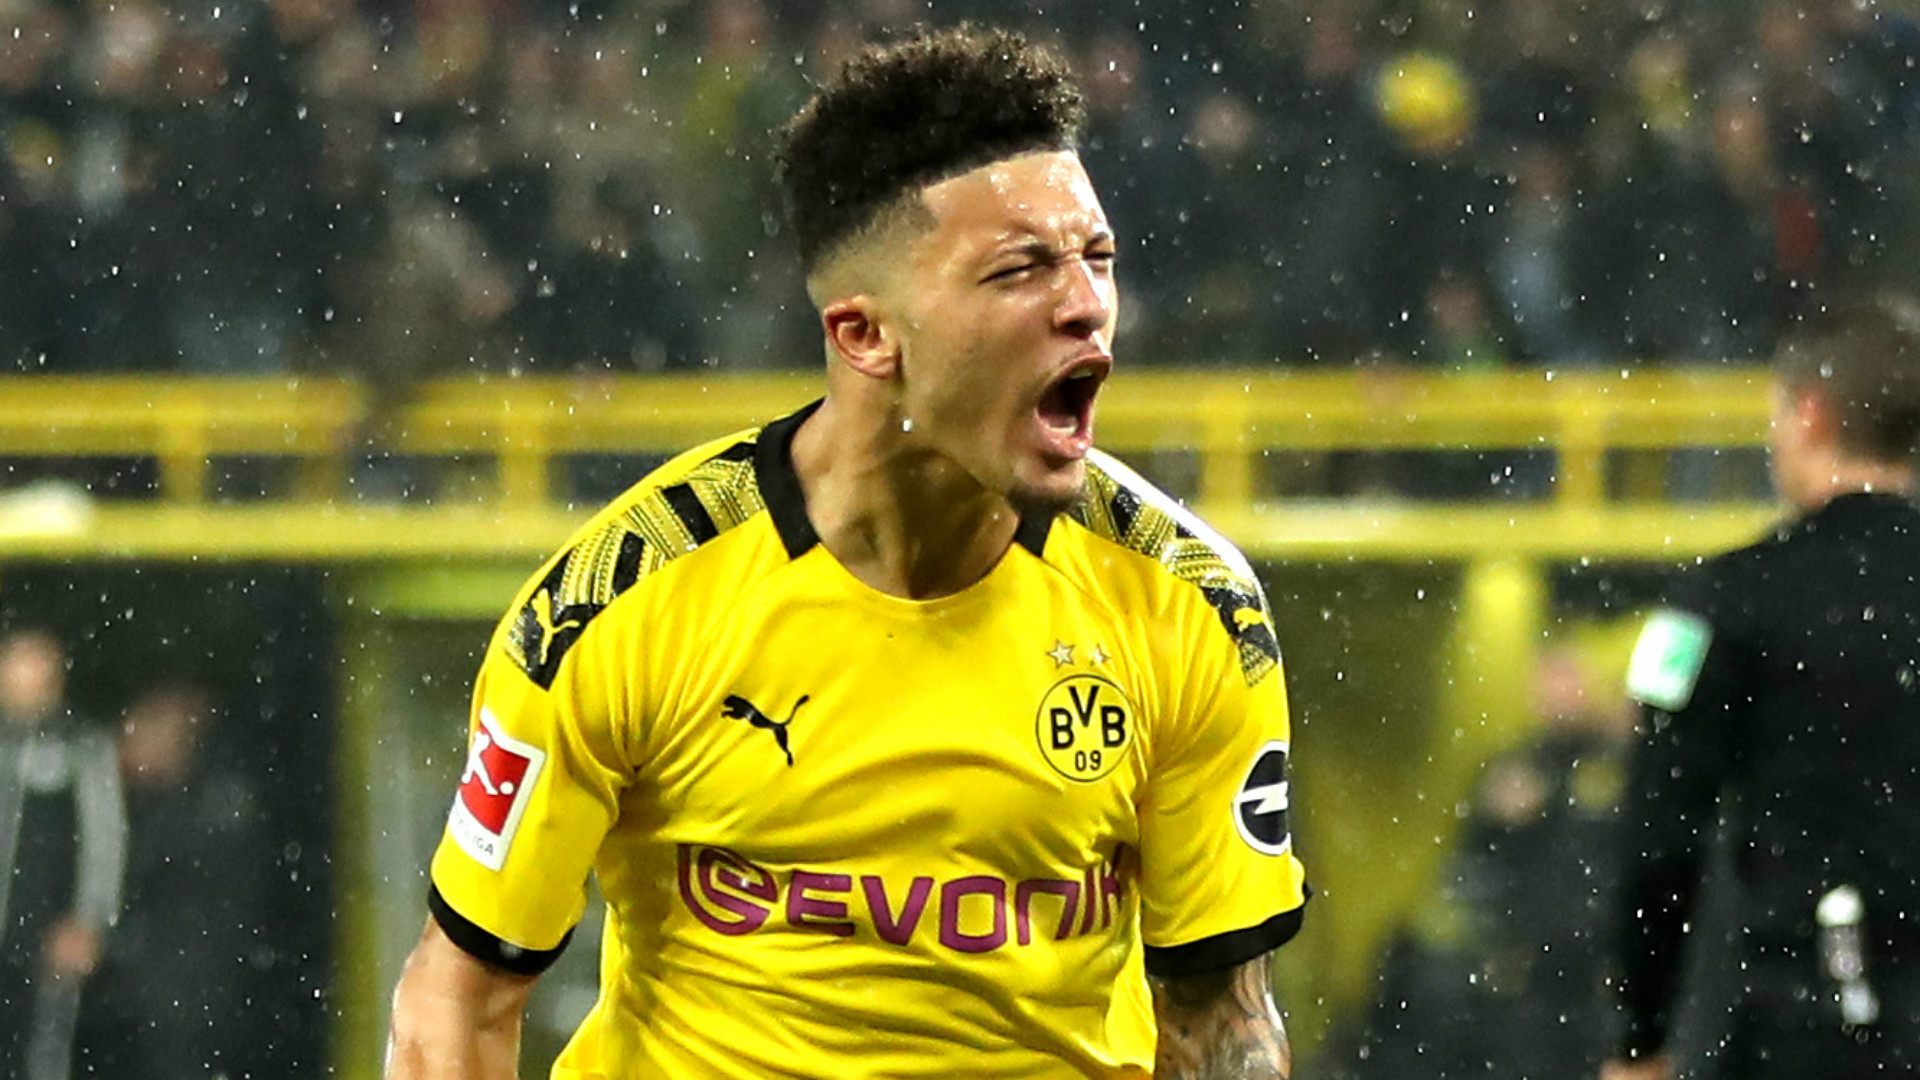 The Jadon Sancho Effect is in full effect.